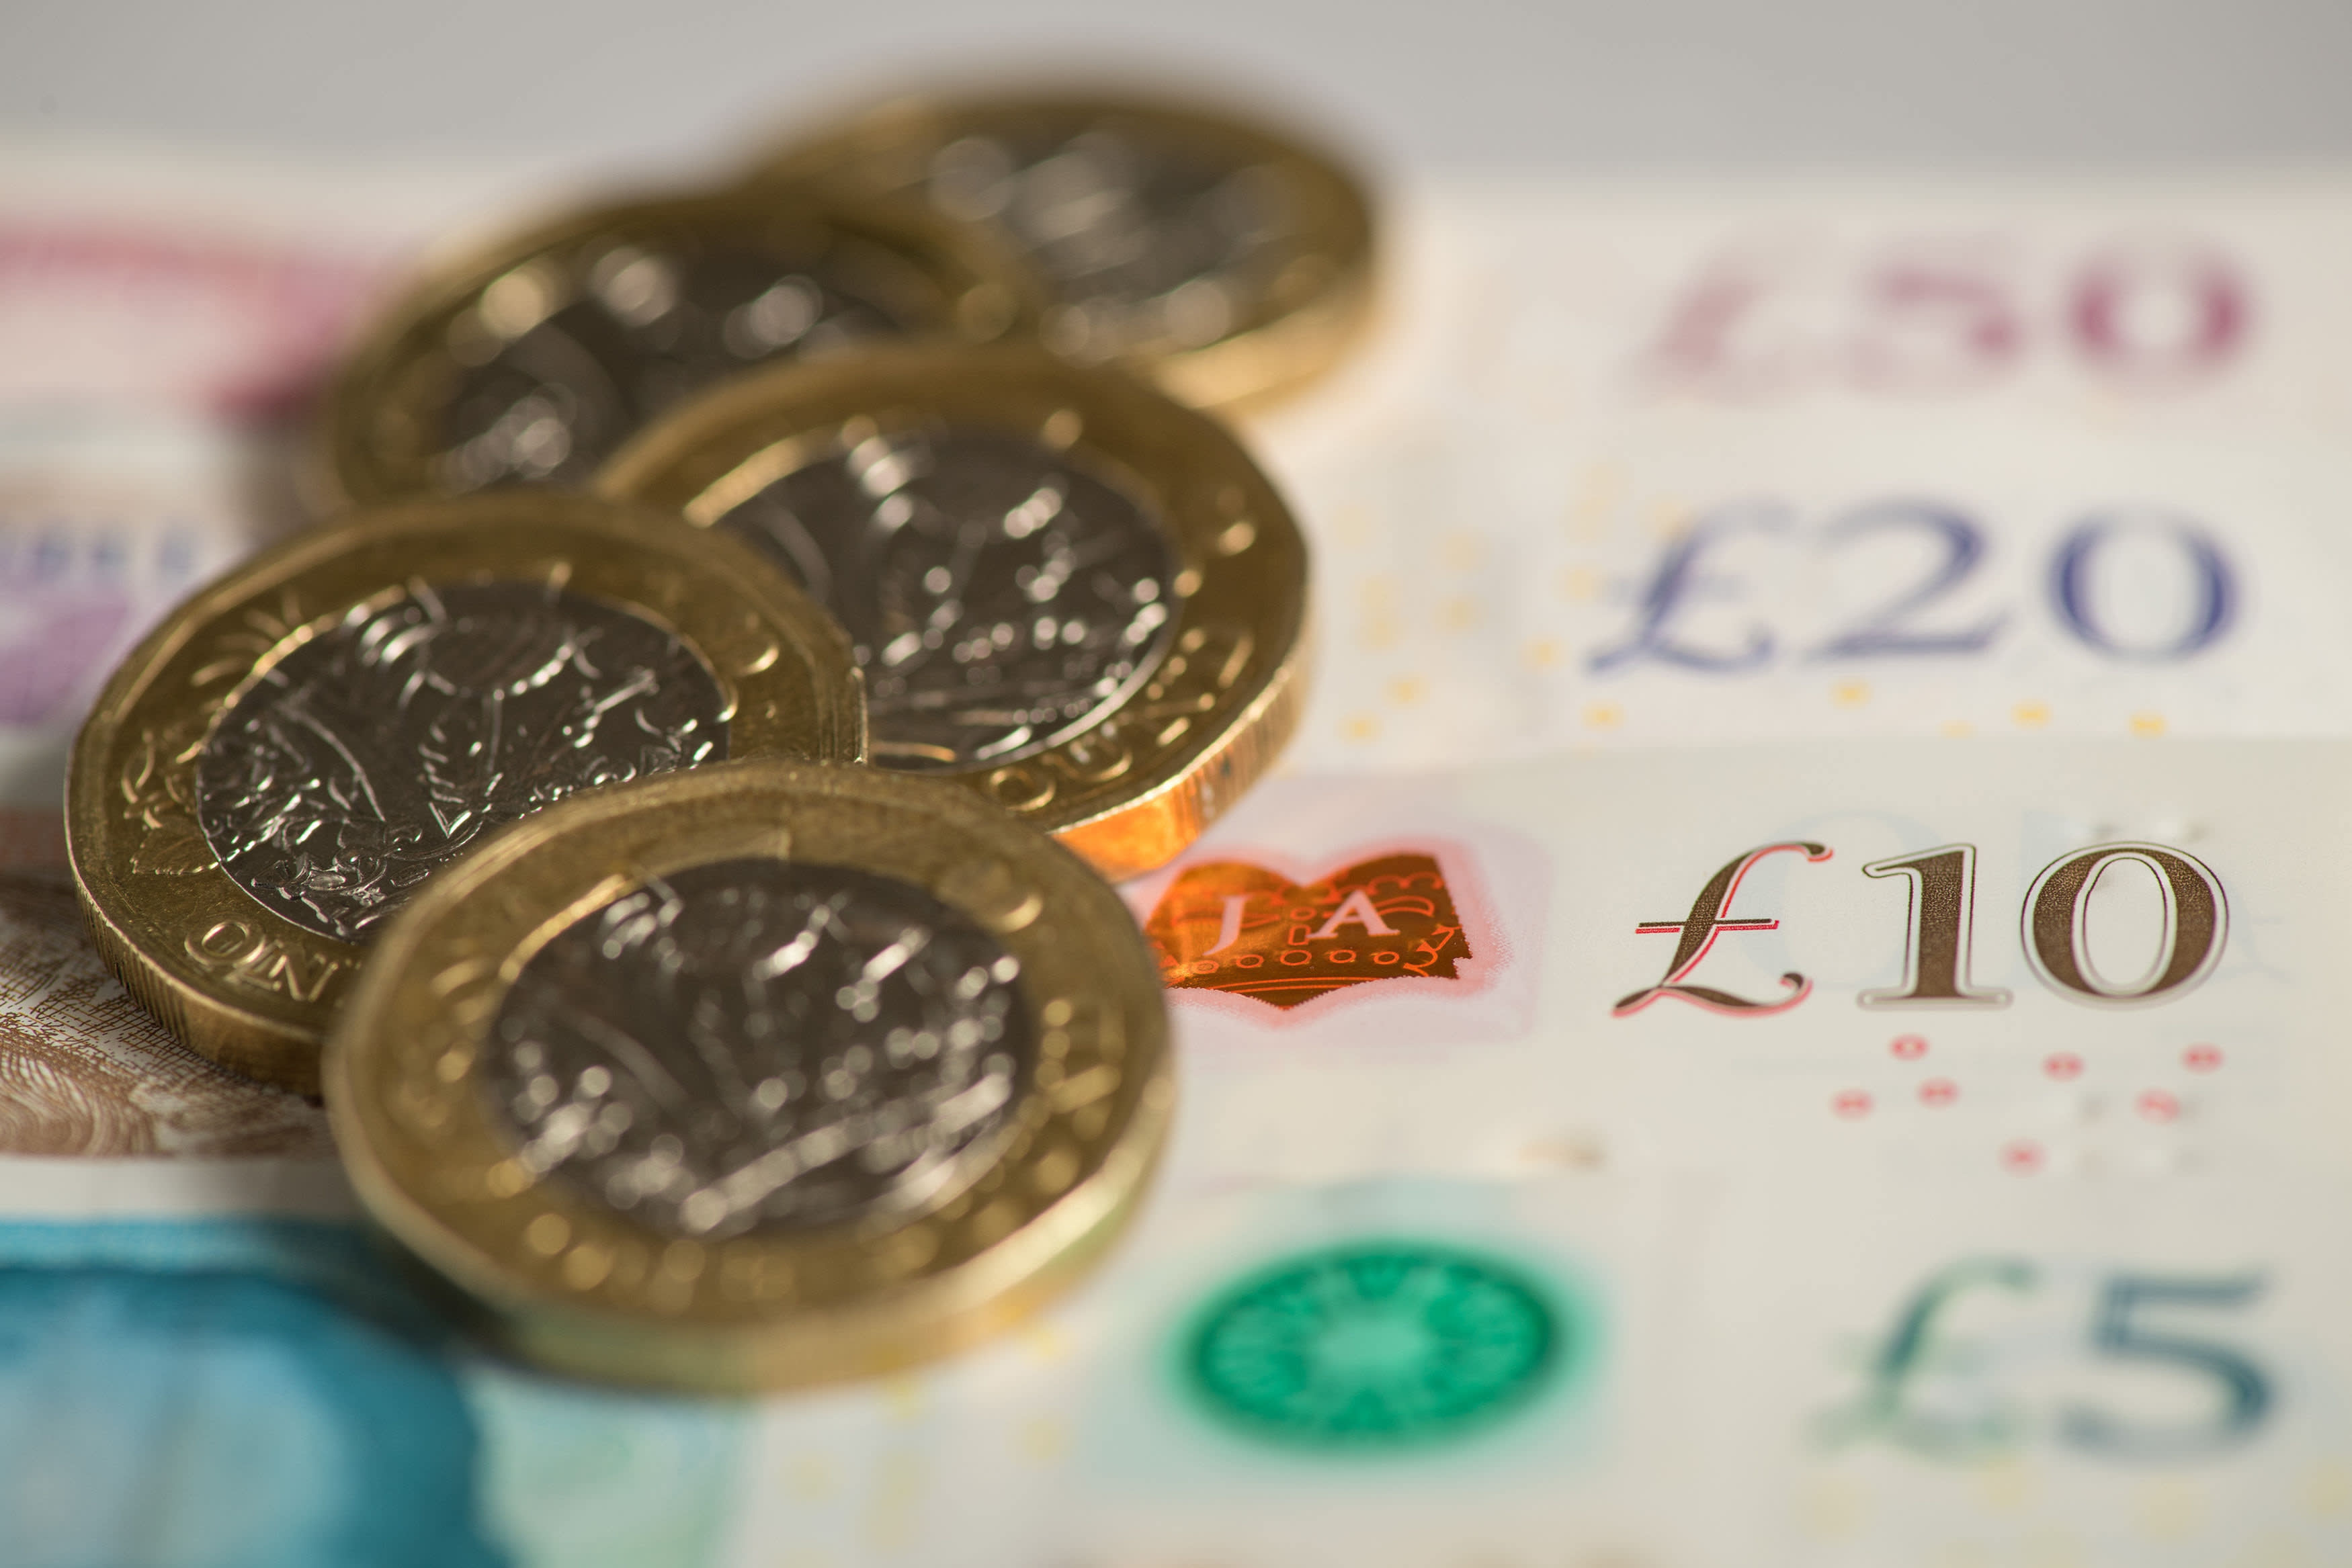 Quilter fund boss sits on £1bn of cash due to bond woes